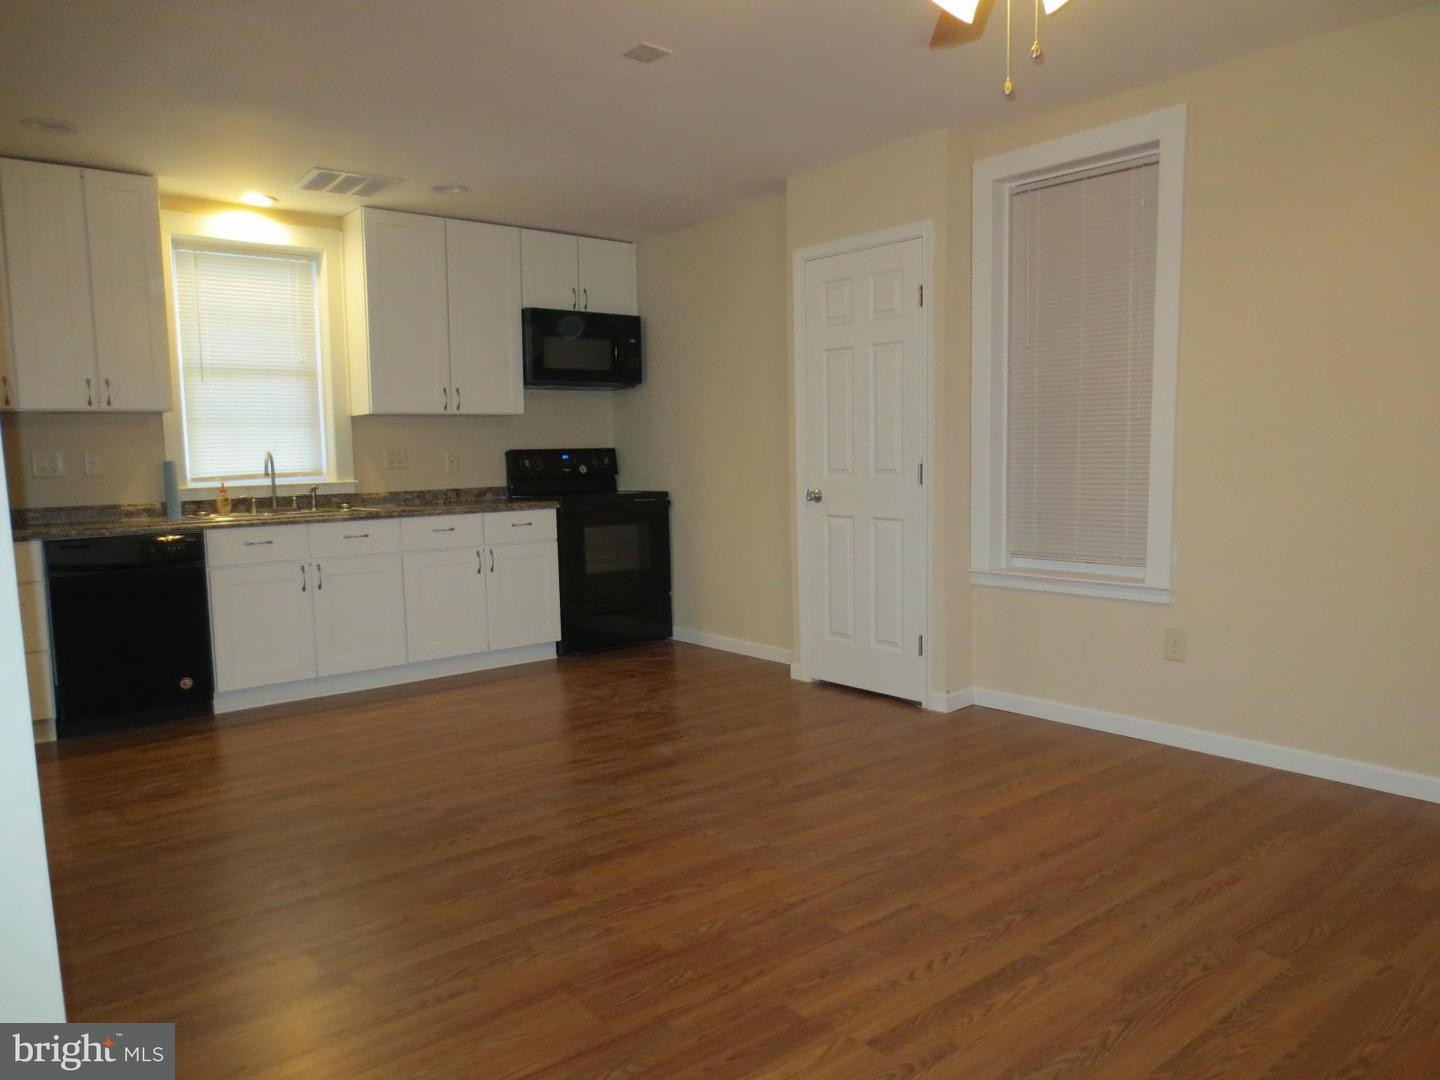 Other Residential for Rent at 219 Clarke Ave York, Pennsylvania 17403 United States